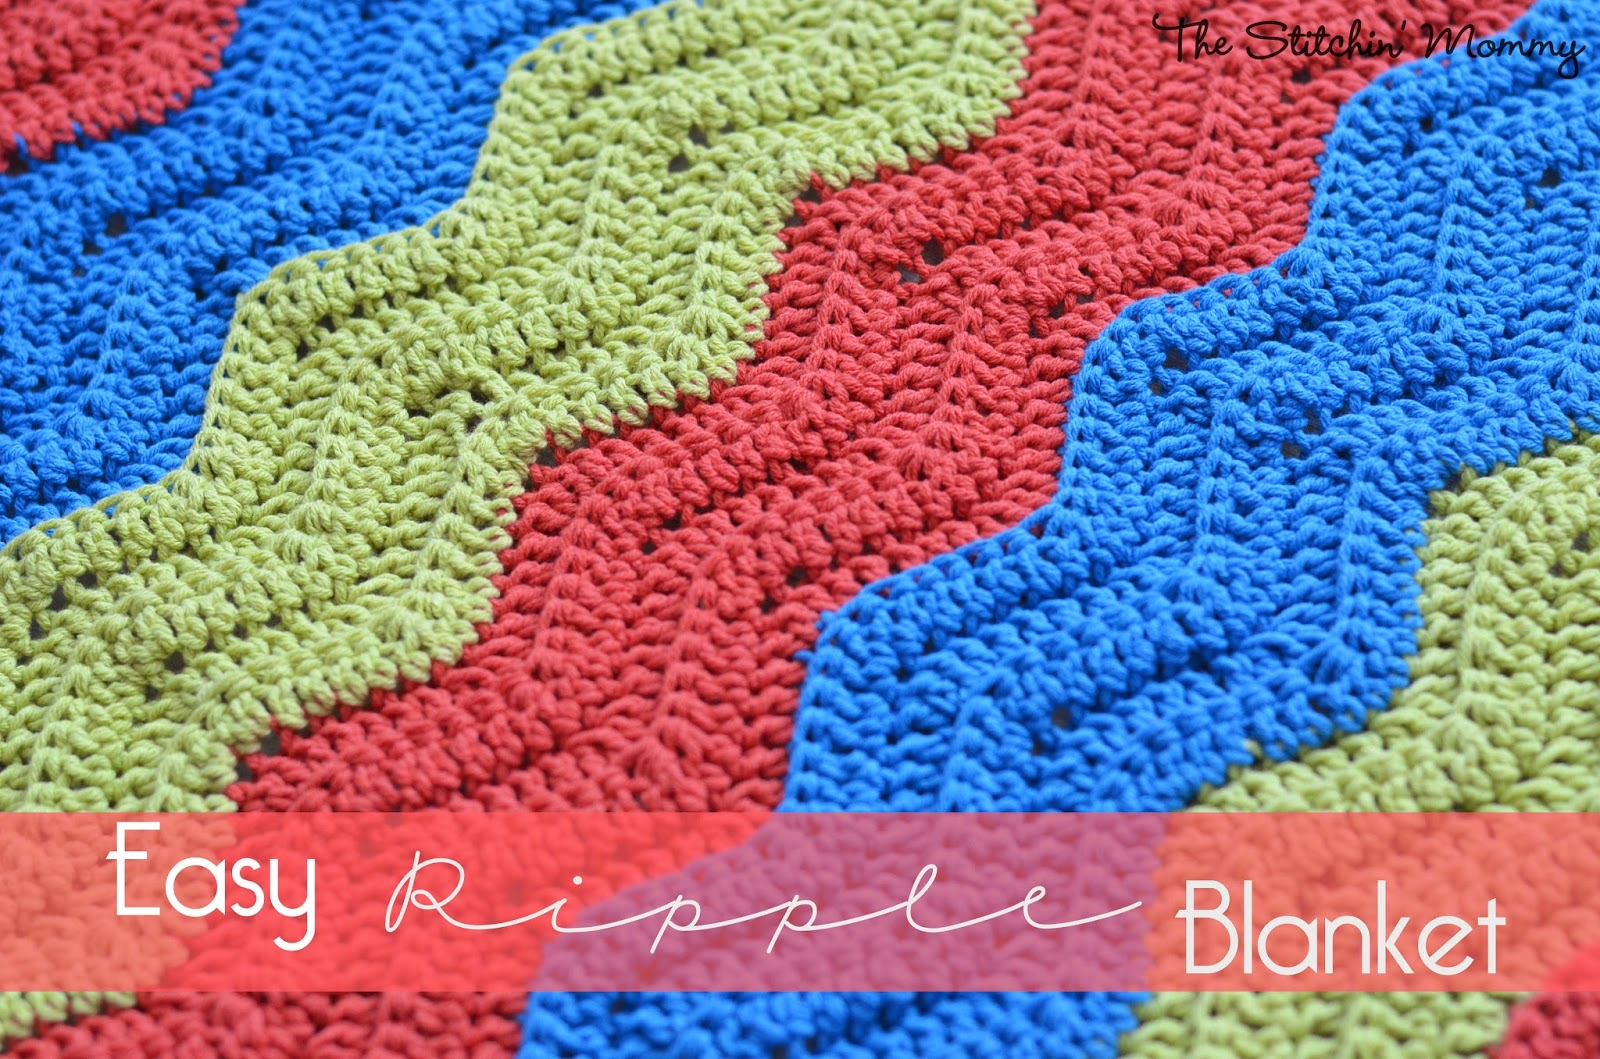 Crochet Patterns Easy Blankets : Easy Crochet Ripple Blanket www.thestitchinmommy.com